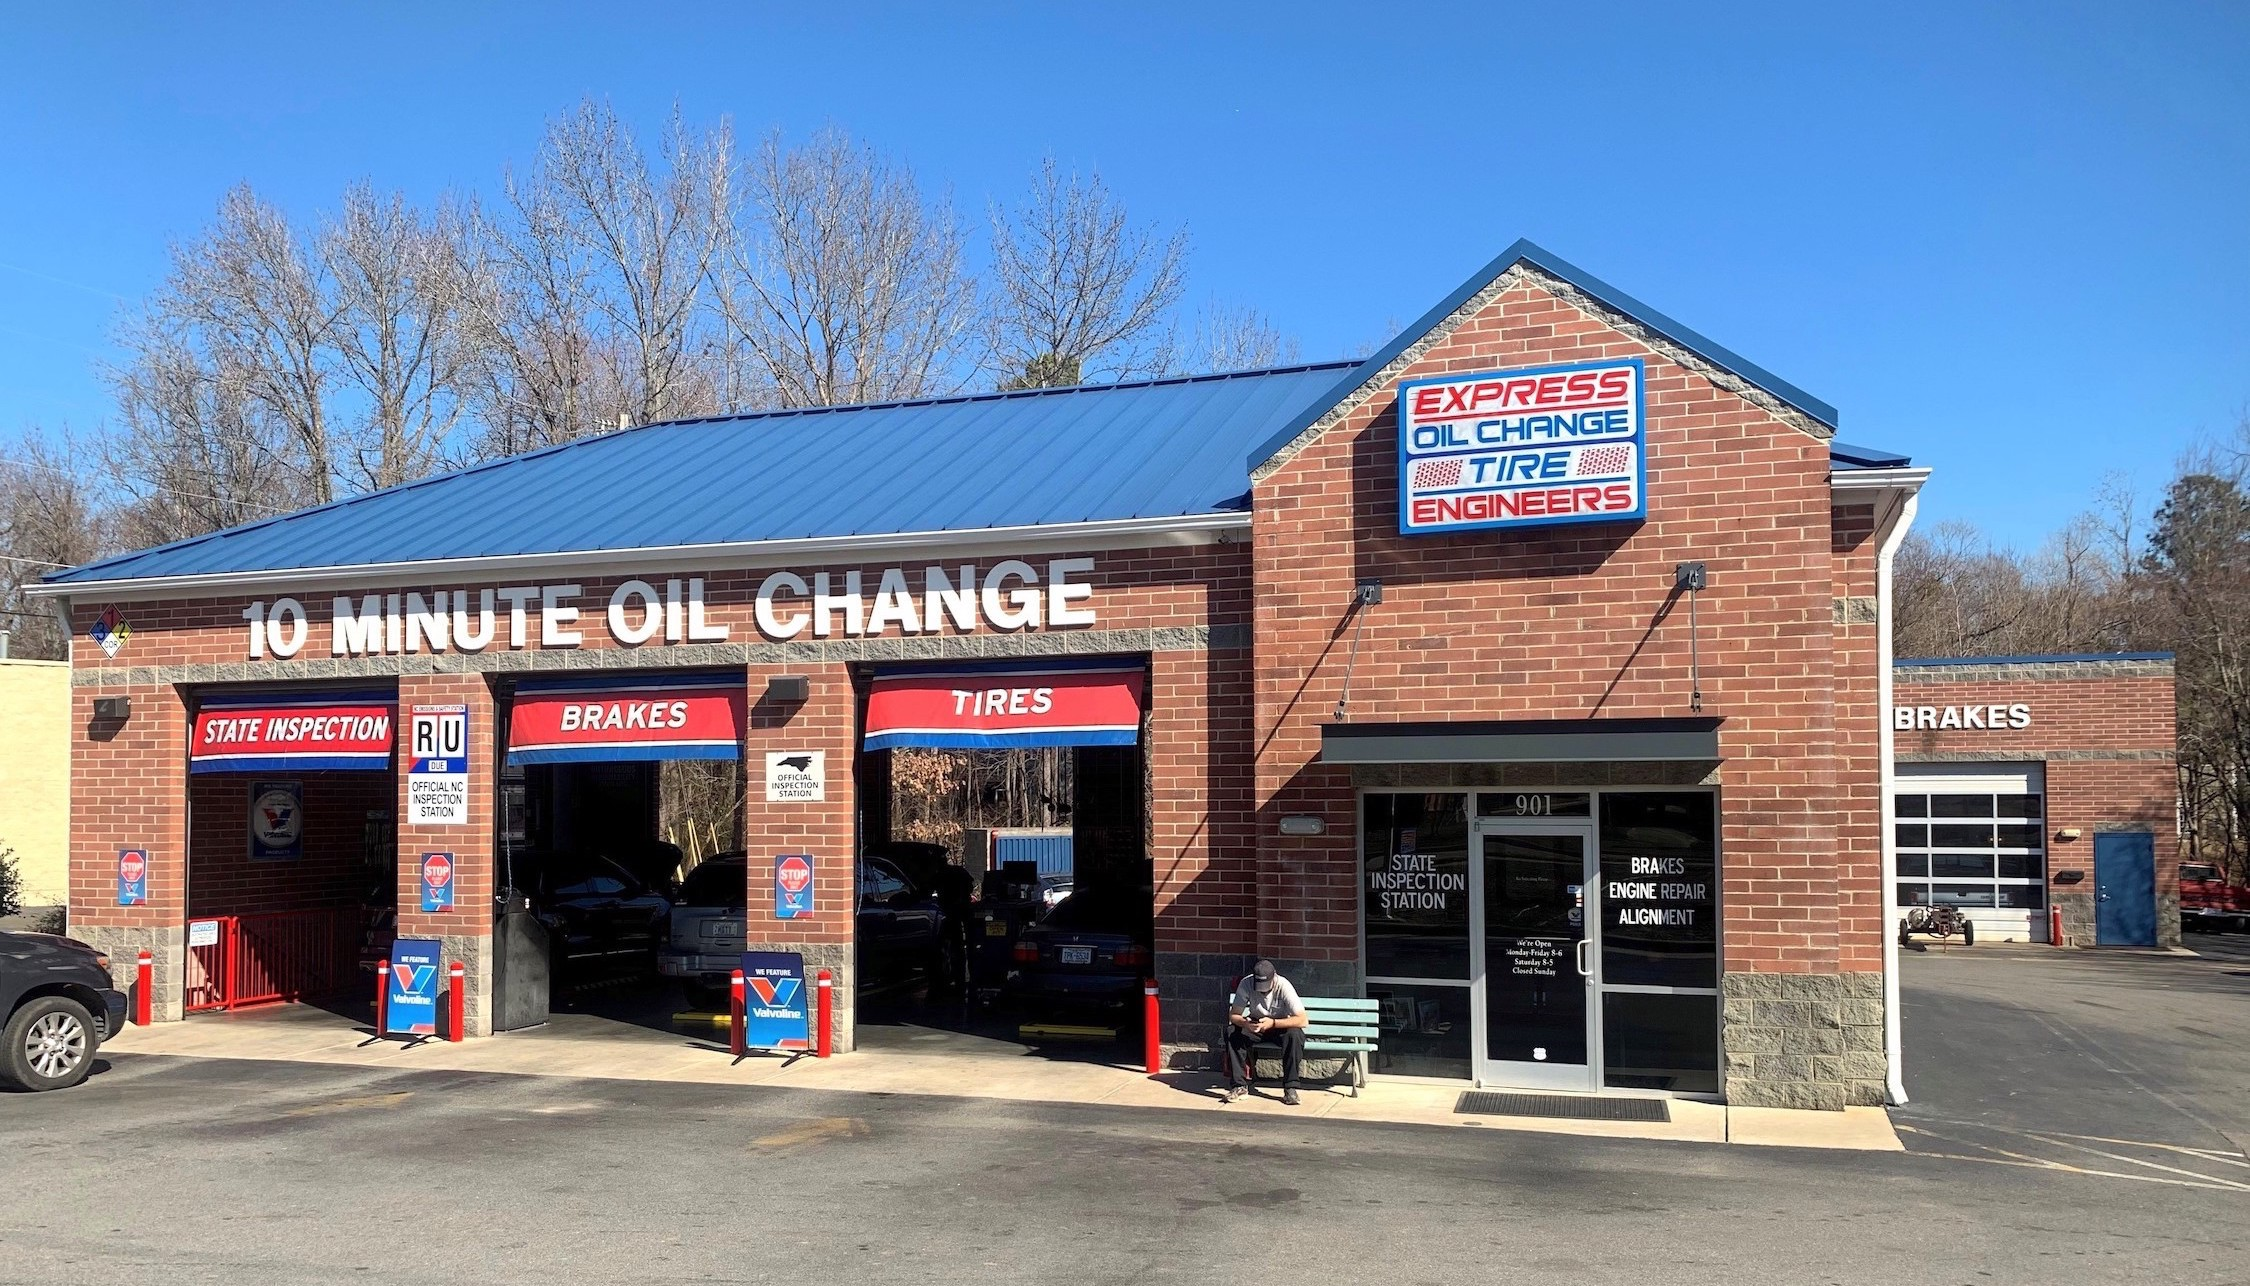 Express Oil Change & Tire Engineers at Apex, NC store